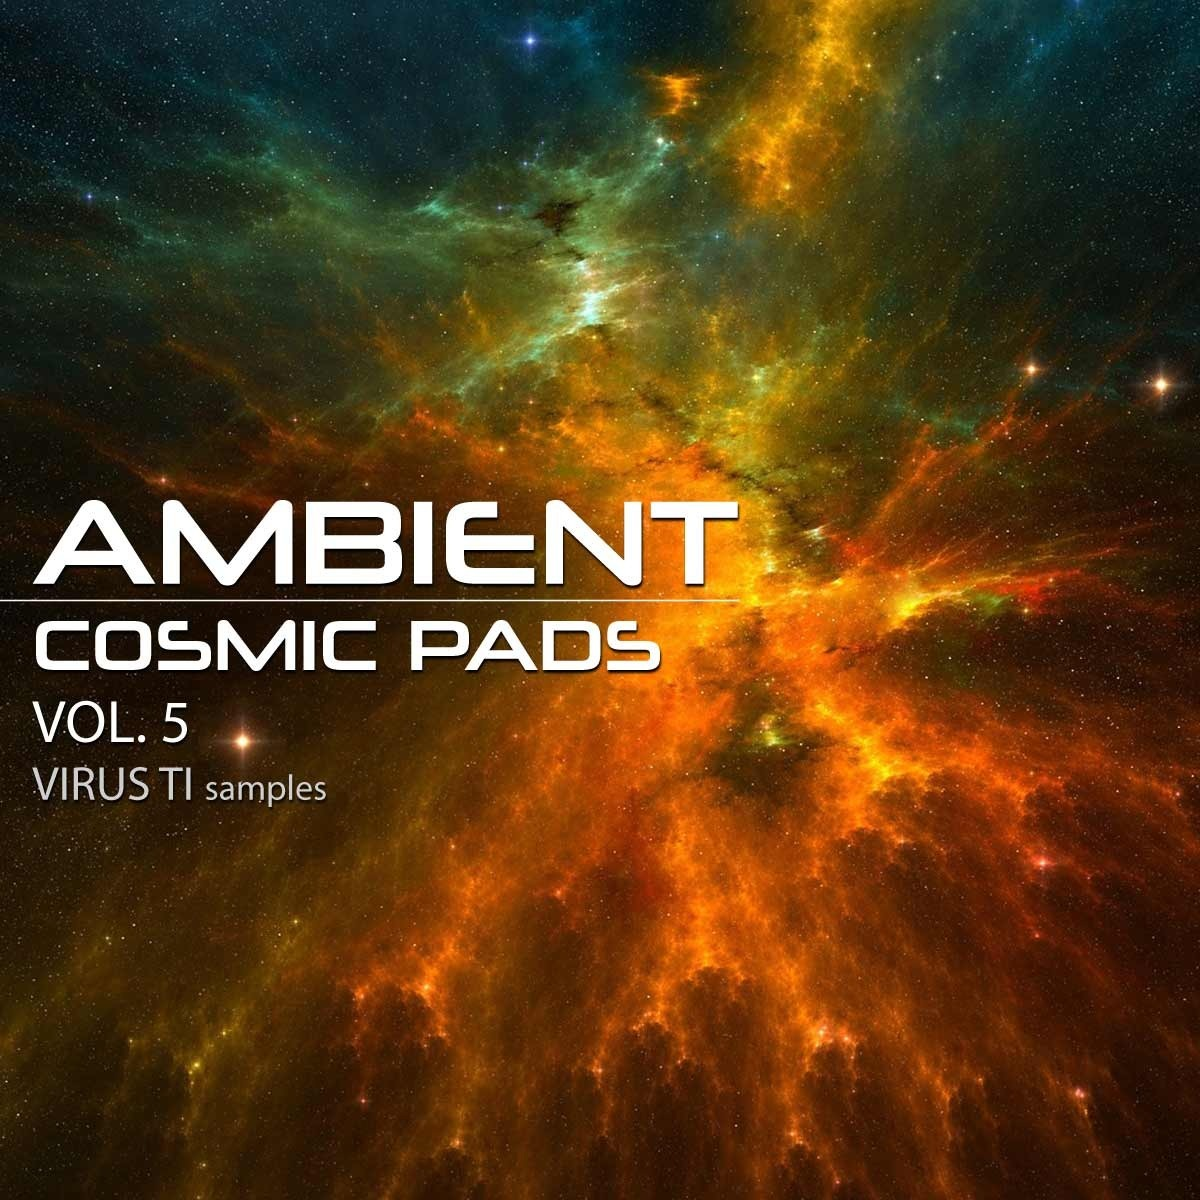 Ambient Cosmic Pads Vol 5